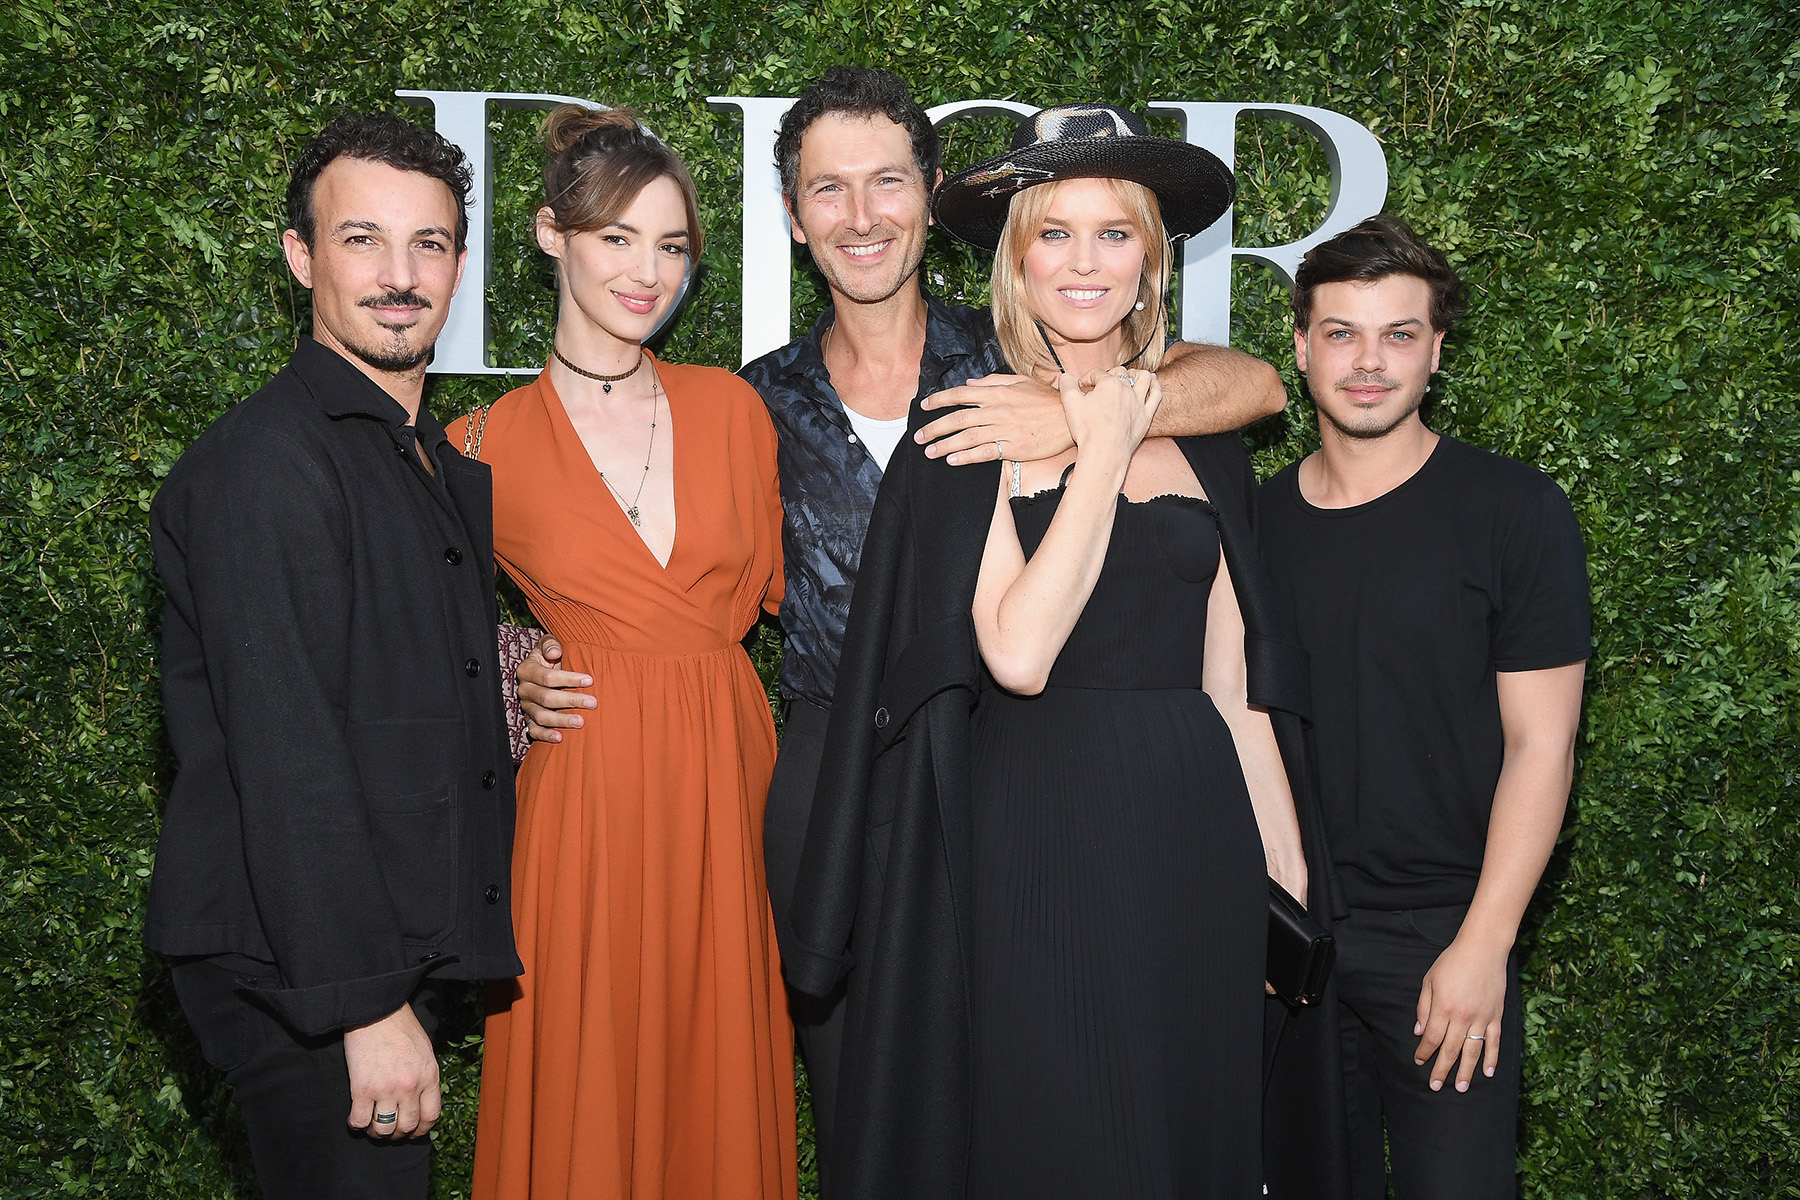 PARIS, FRANCE - JULY 03: (L-R) Nicolas Ouchenir, Louise Bourgoin, Simon Buret, Eva Herzigova and Hugo Matha attend 'Christian Dior, couturier du reve' Exhibition Launch celebrating 70 years of creation at Musee Des Arts Decoratifs on July 3, 2017 in Paris, France. (Photo by Pascal Le Segretain/Getty Images for Christian Dior) *** Local Caption *** Nicolas Ouchenir, Louise Bourgoin, Simon Buret, Eva Herzigova, Hugo Matha